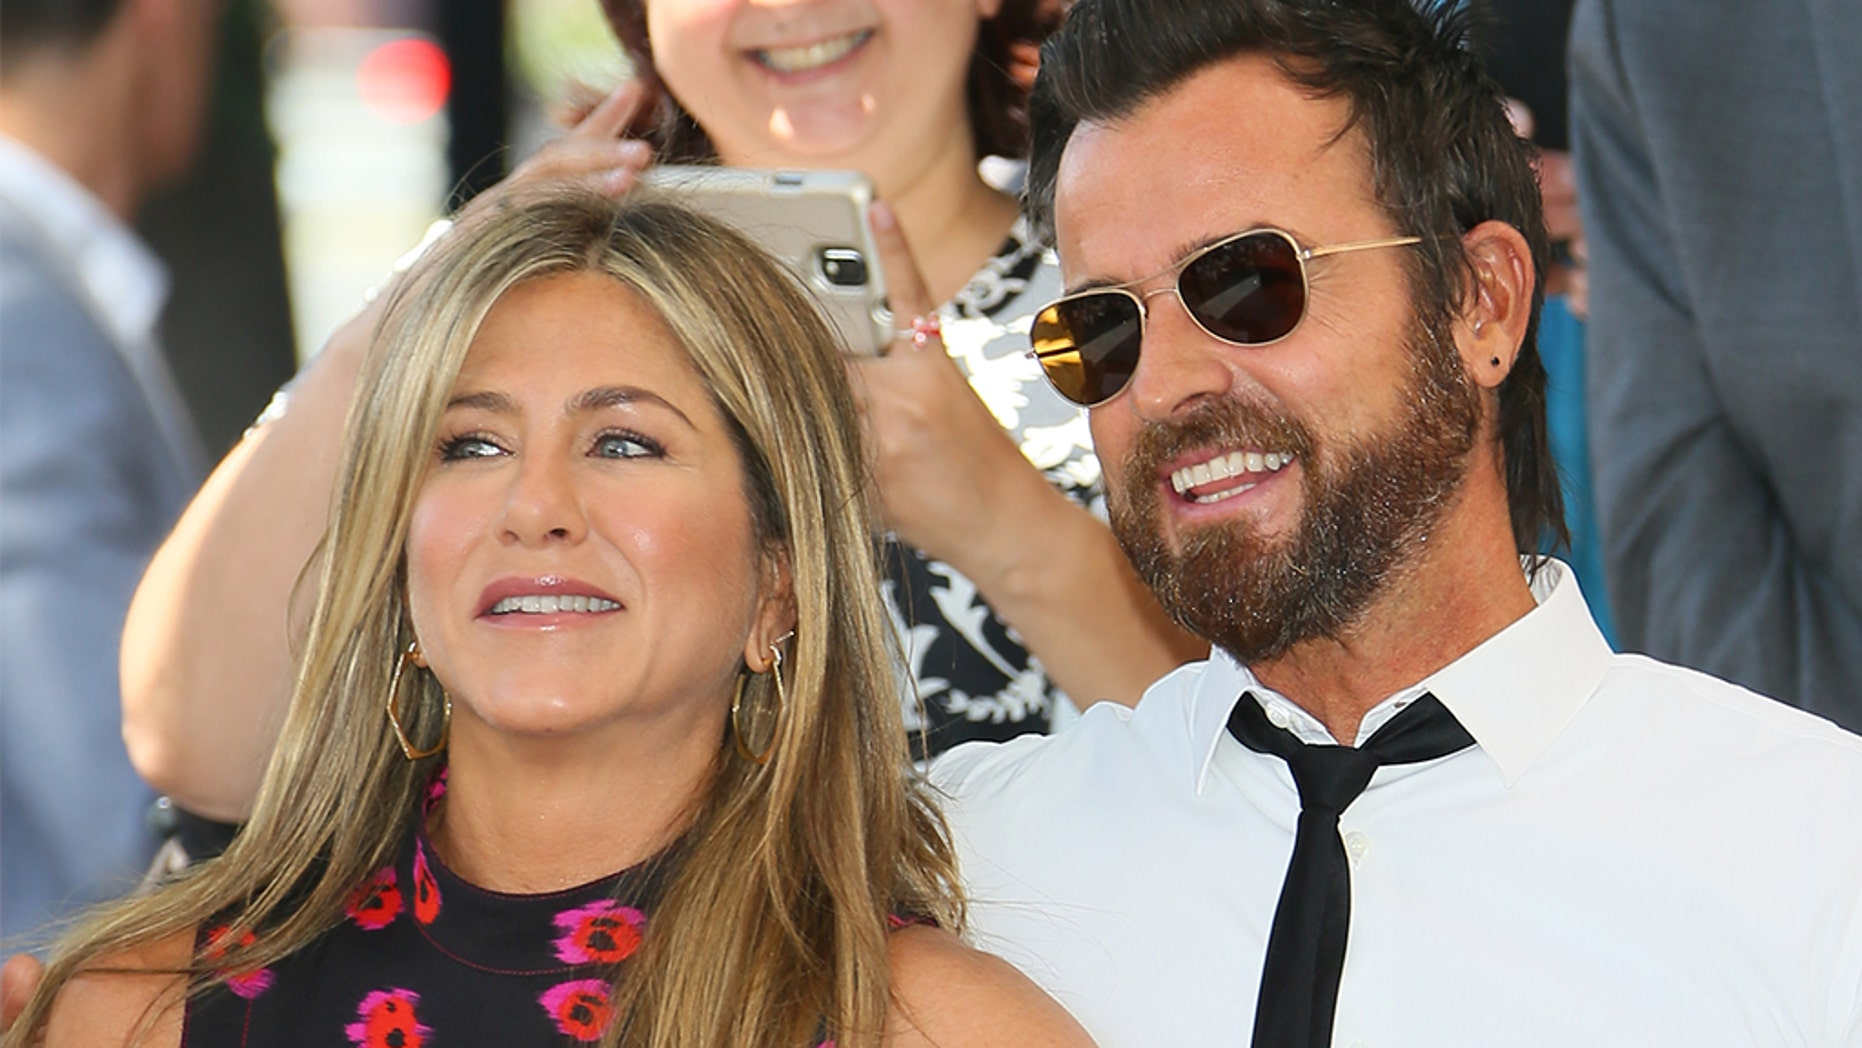 Justin Theroux wished his ex Jennifer Aniston a happy birthday on social media Monday. The two announced their separation a year ago.